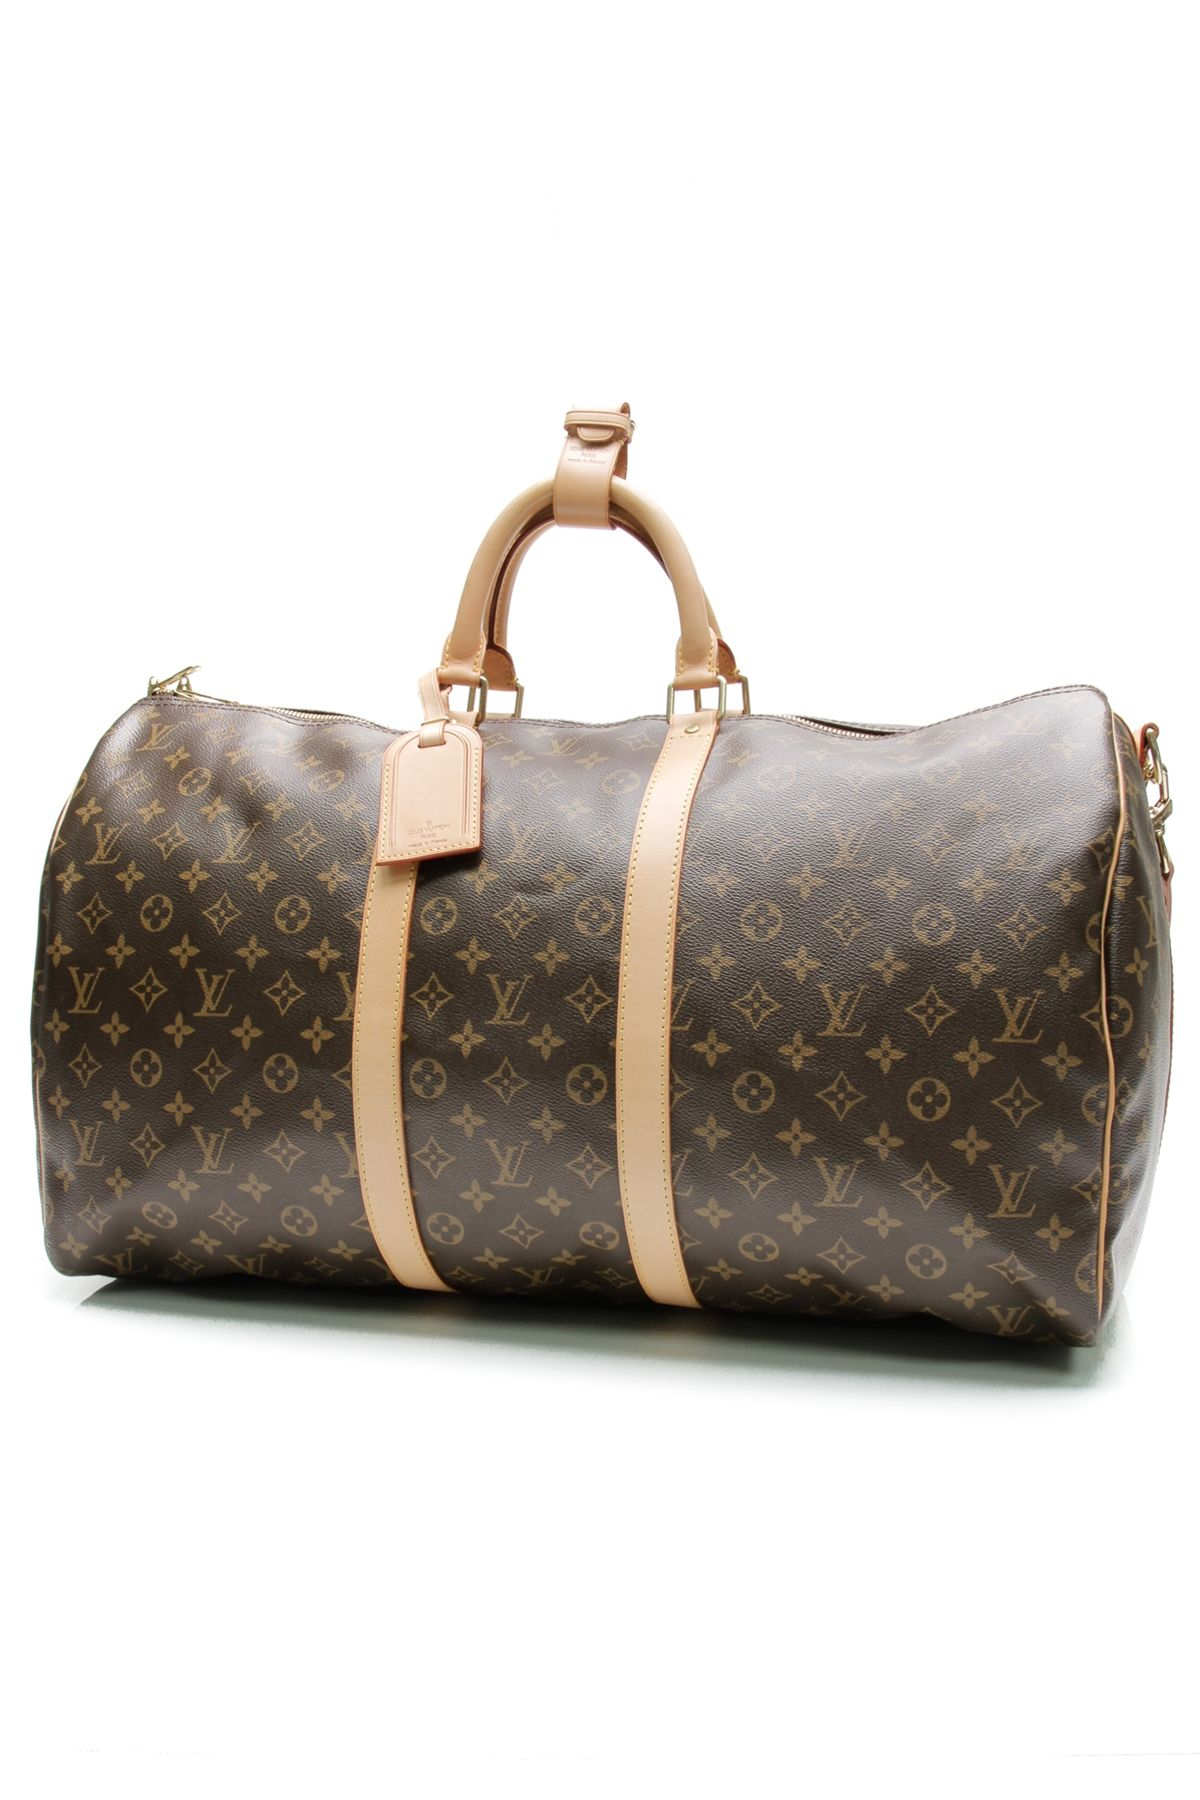 9b960535c2d8 Louis Vuitton Monogram Canvas Keepall Bandouliere 55 Travel Bag Our Price    1